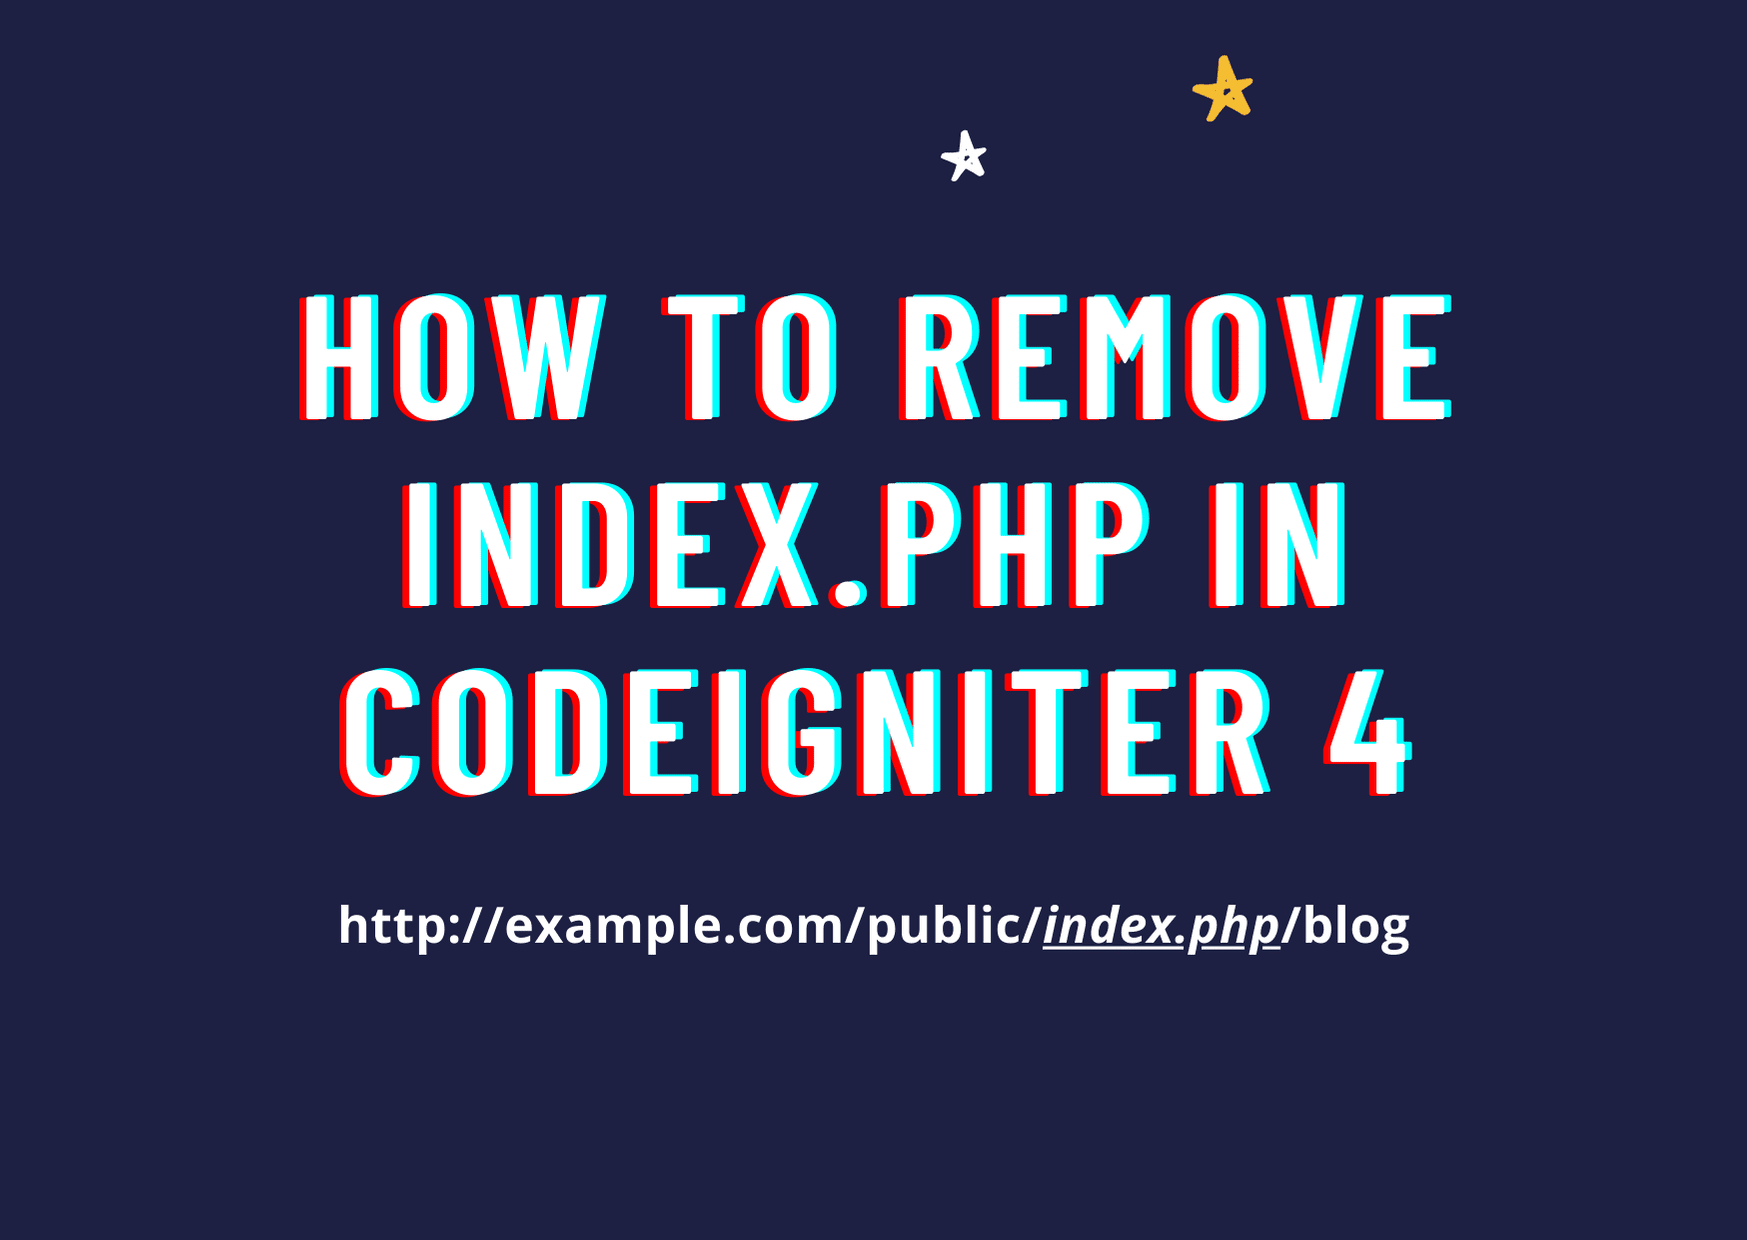 How to remove public/index.php/ from URL in Codeigniter 4